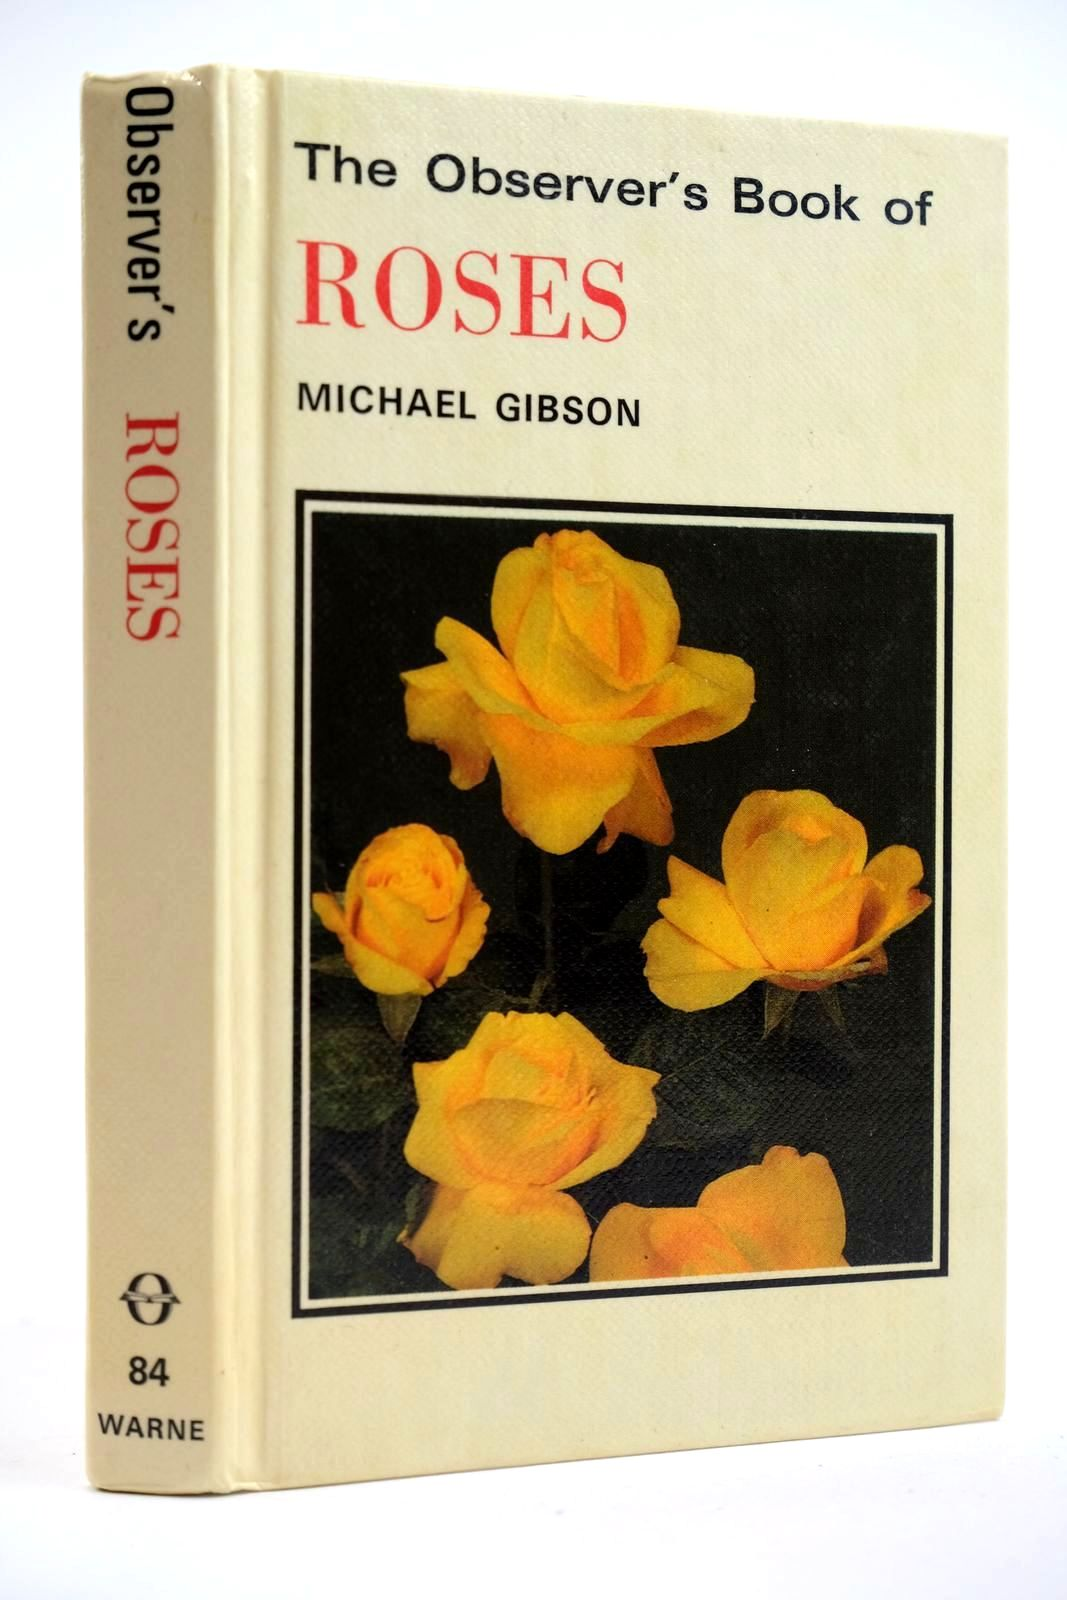 Photo of THE OBSERVER'S BOOK OF ROSES written by Gibson, Michael published by Frederick Warne (STOCK CODE: 2132057)  for sale by Stella & Rose's Books